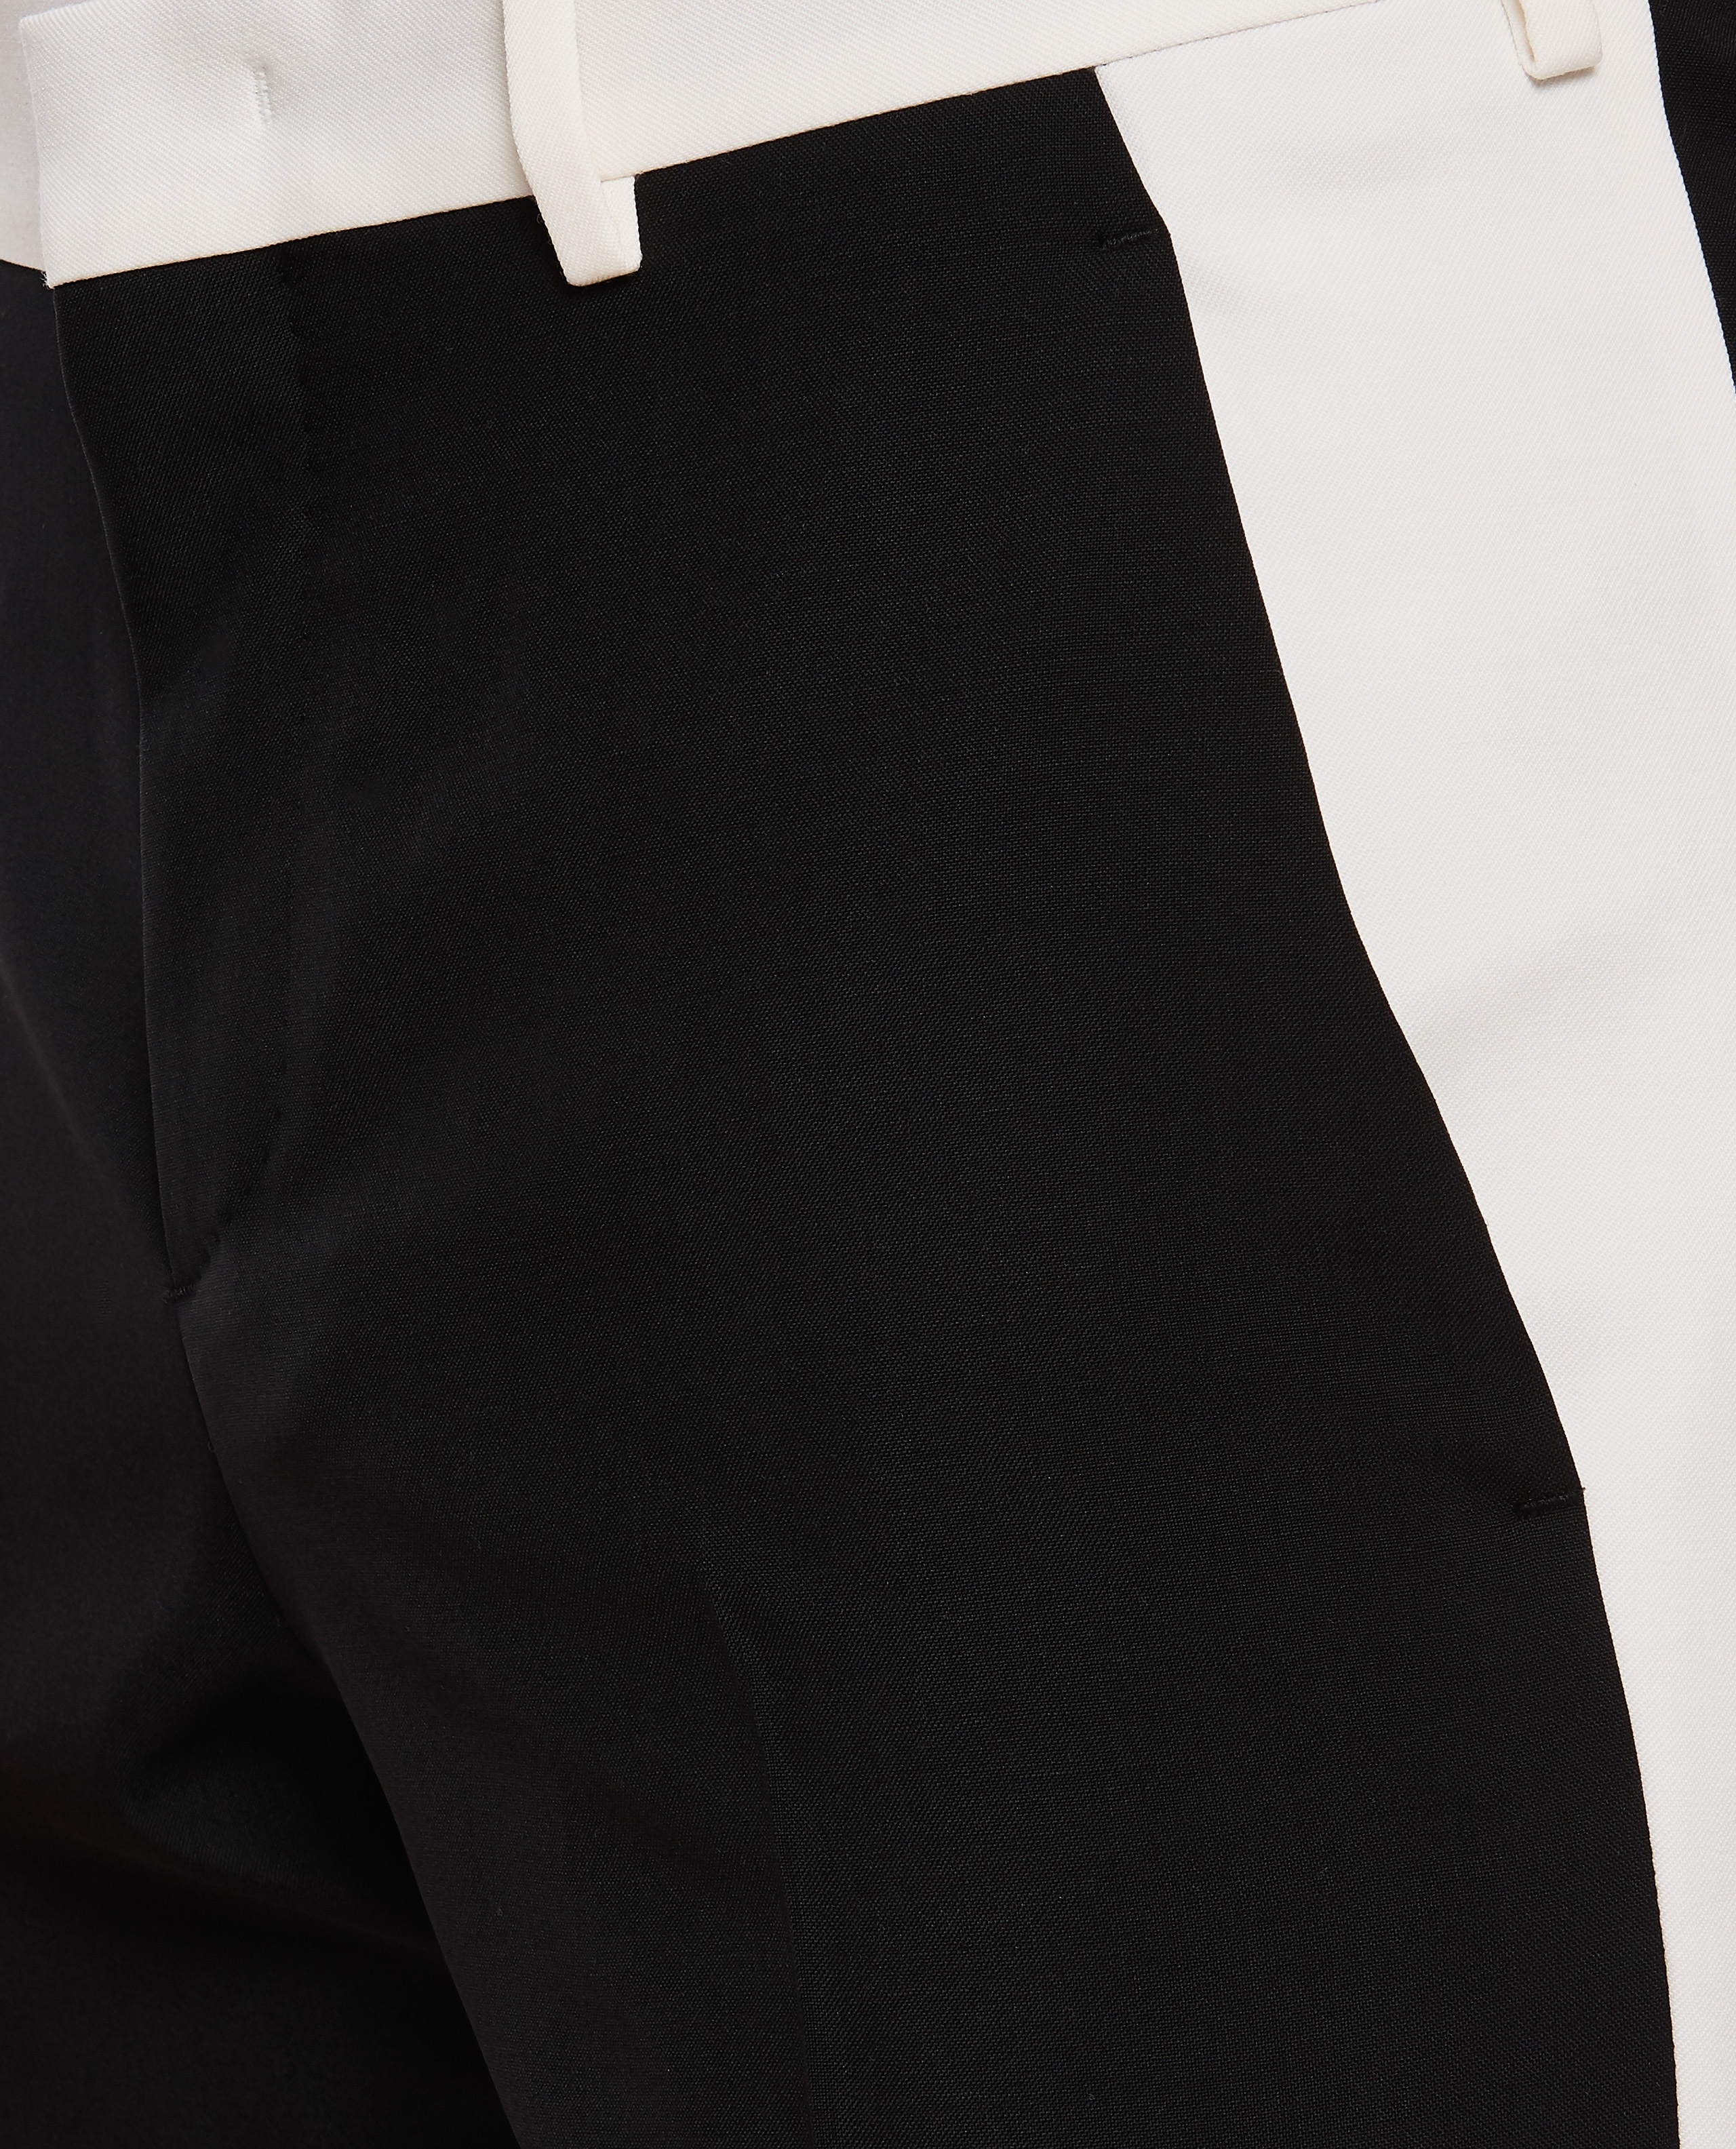 Trousers with side bands Men Valentino 000263920039003 4